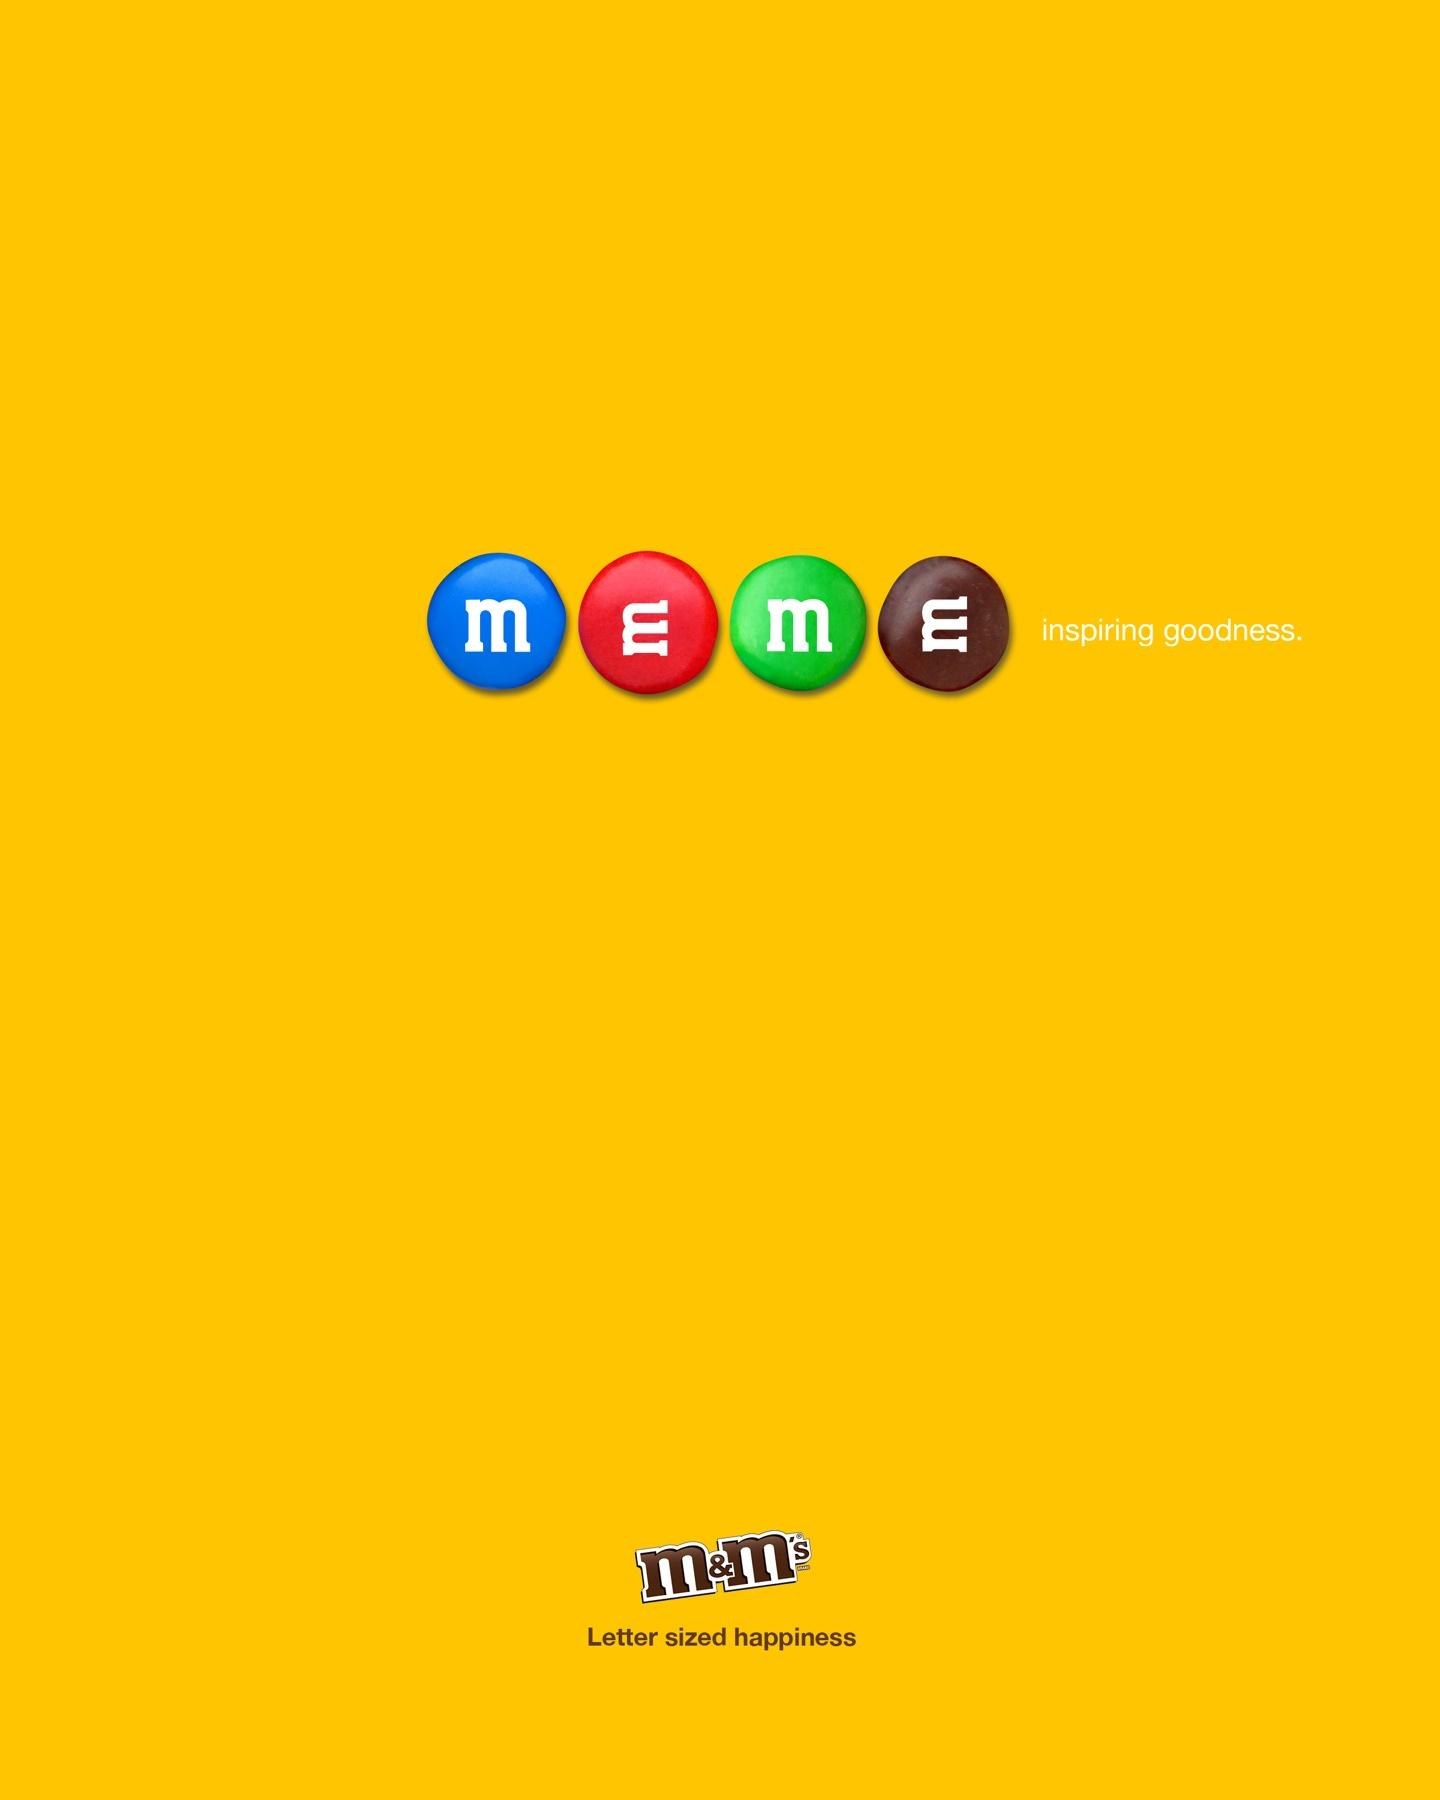 2013 print ad for M&Ms